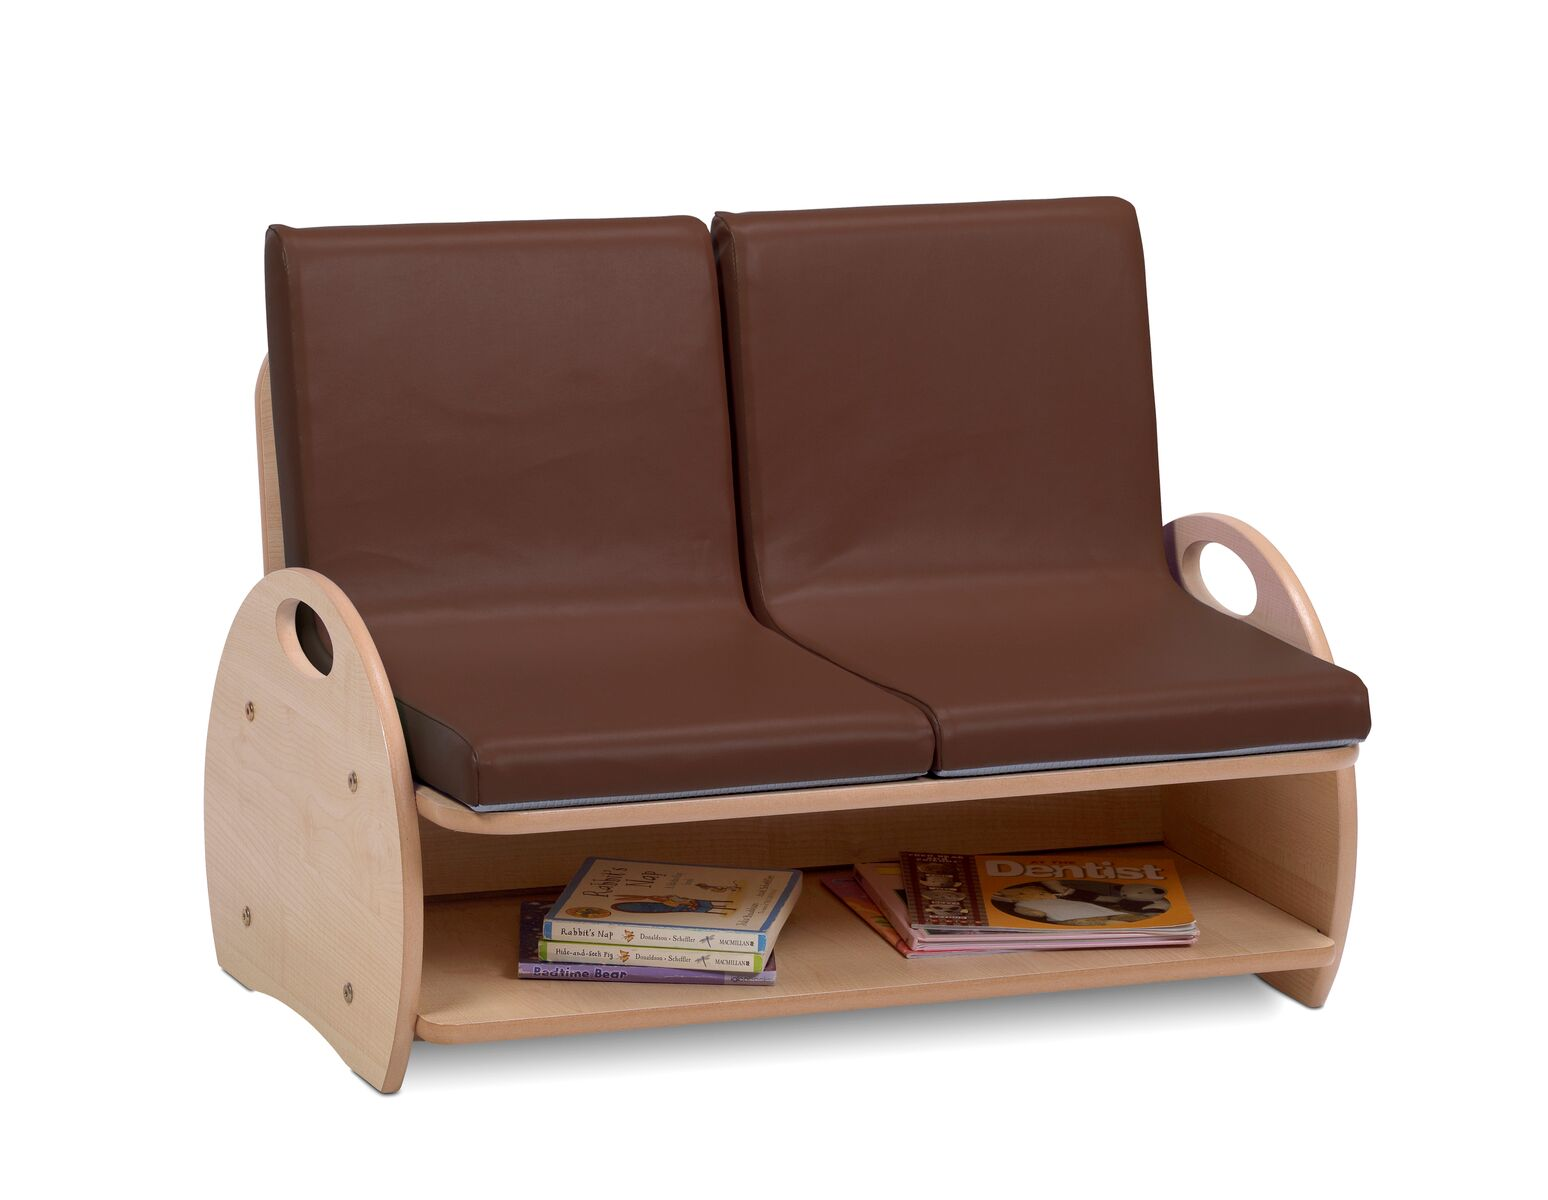 Soft Sofa Seating - 2 Seat Sofa (Brown vinyl)